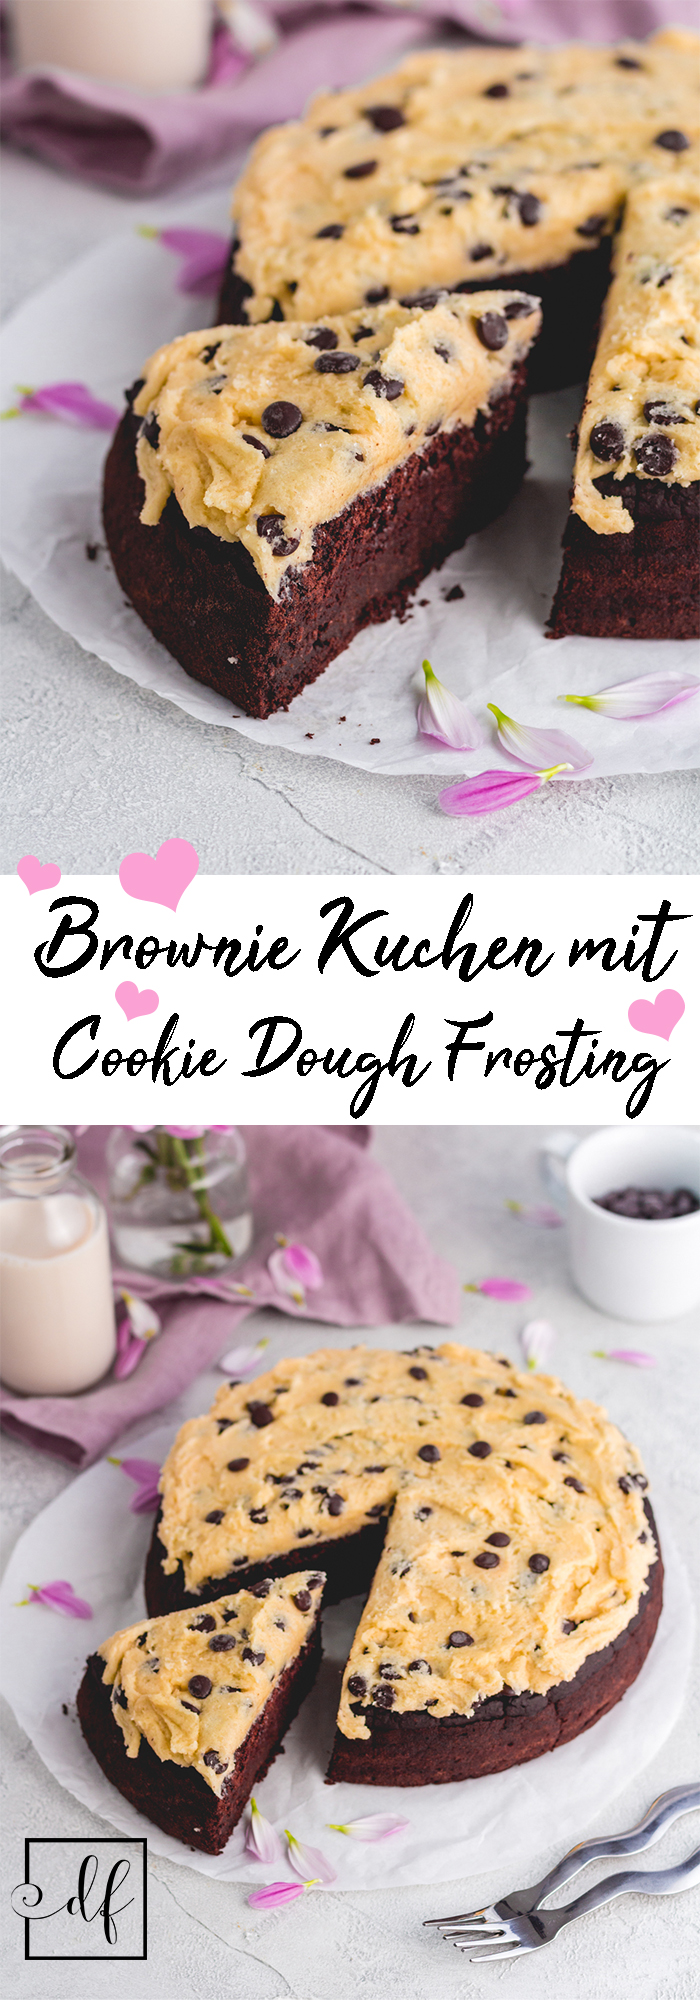 glutenfreier Brownie Kuchen mit Cookie Dough frosting - vegan